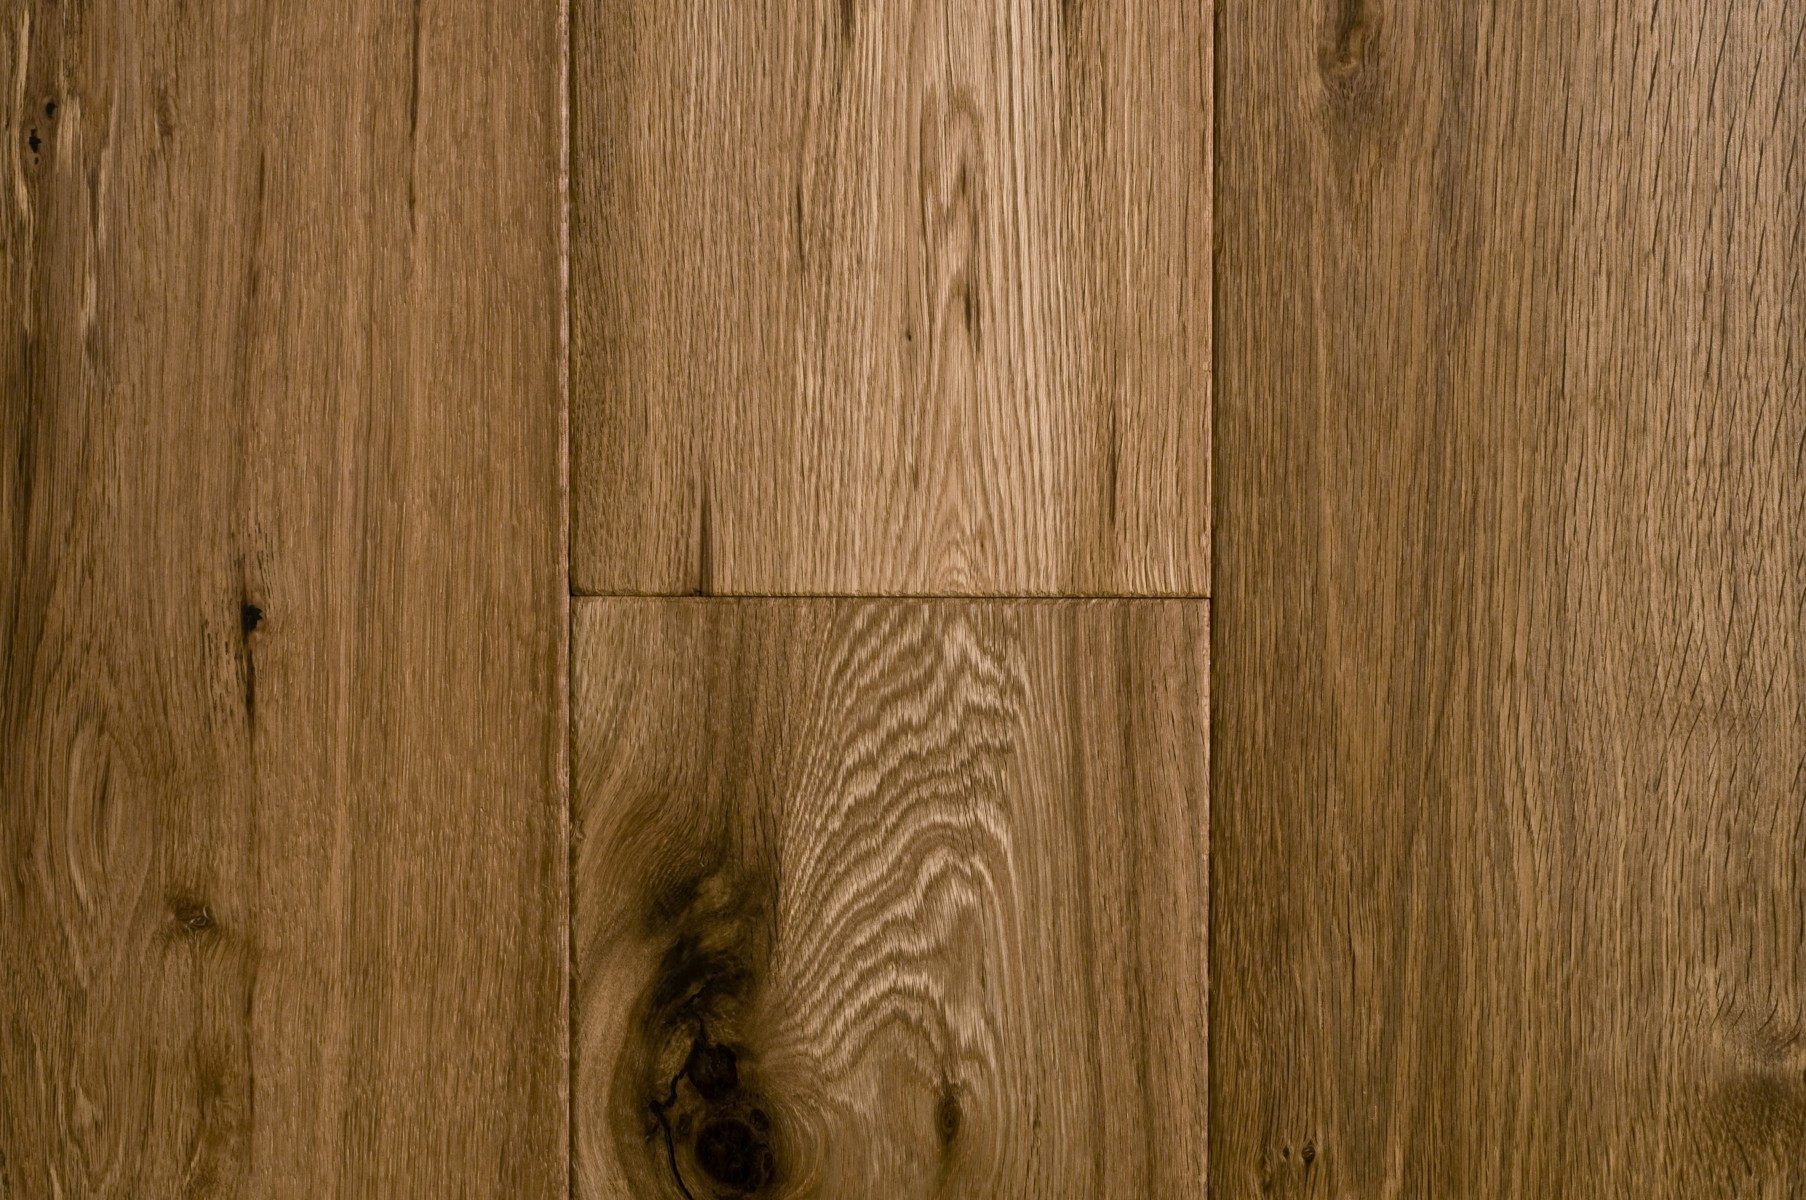 Hardwood Floor Refinishing Houston Tx Of Provenza Hardwood Flooring Houston Tx Discount Premium Wood Floors Regarding Olde Dutch European Oak